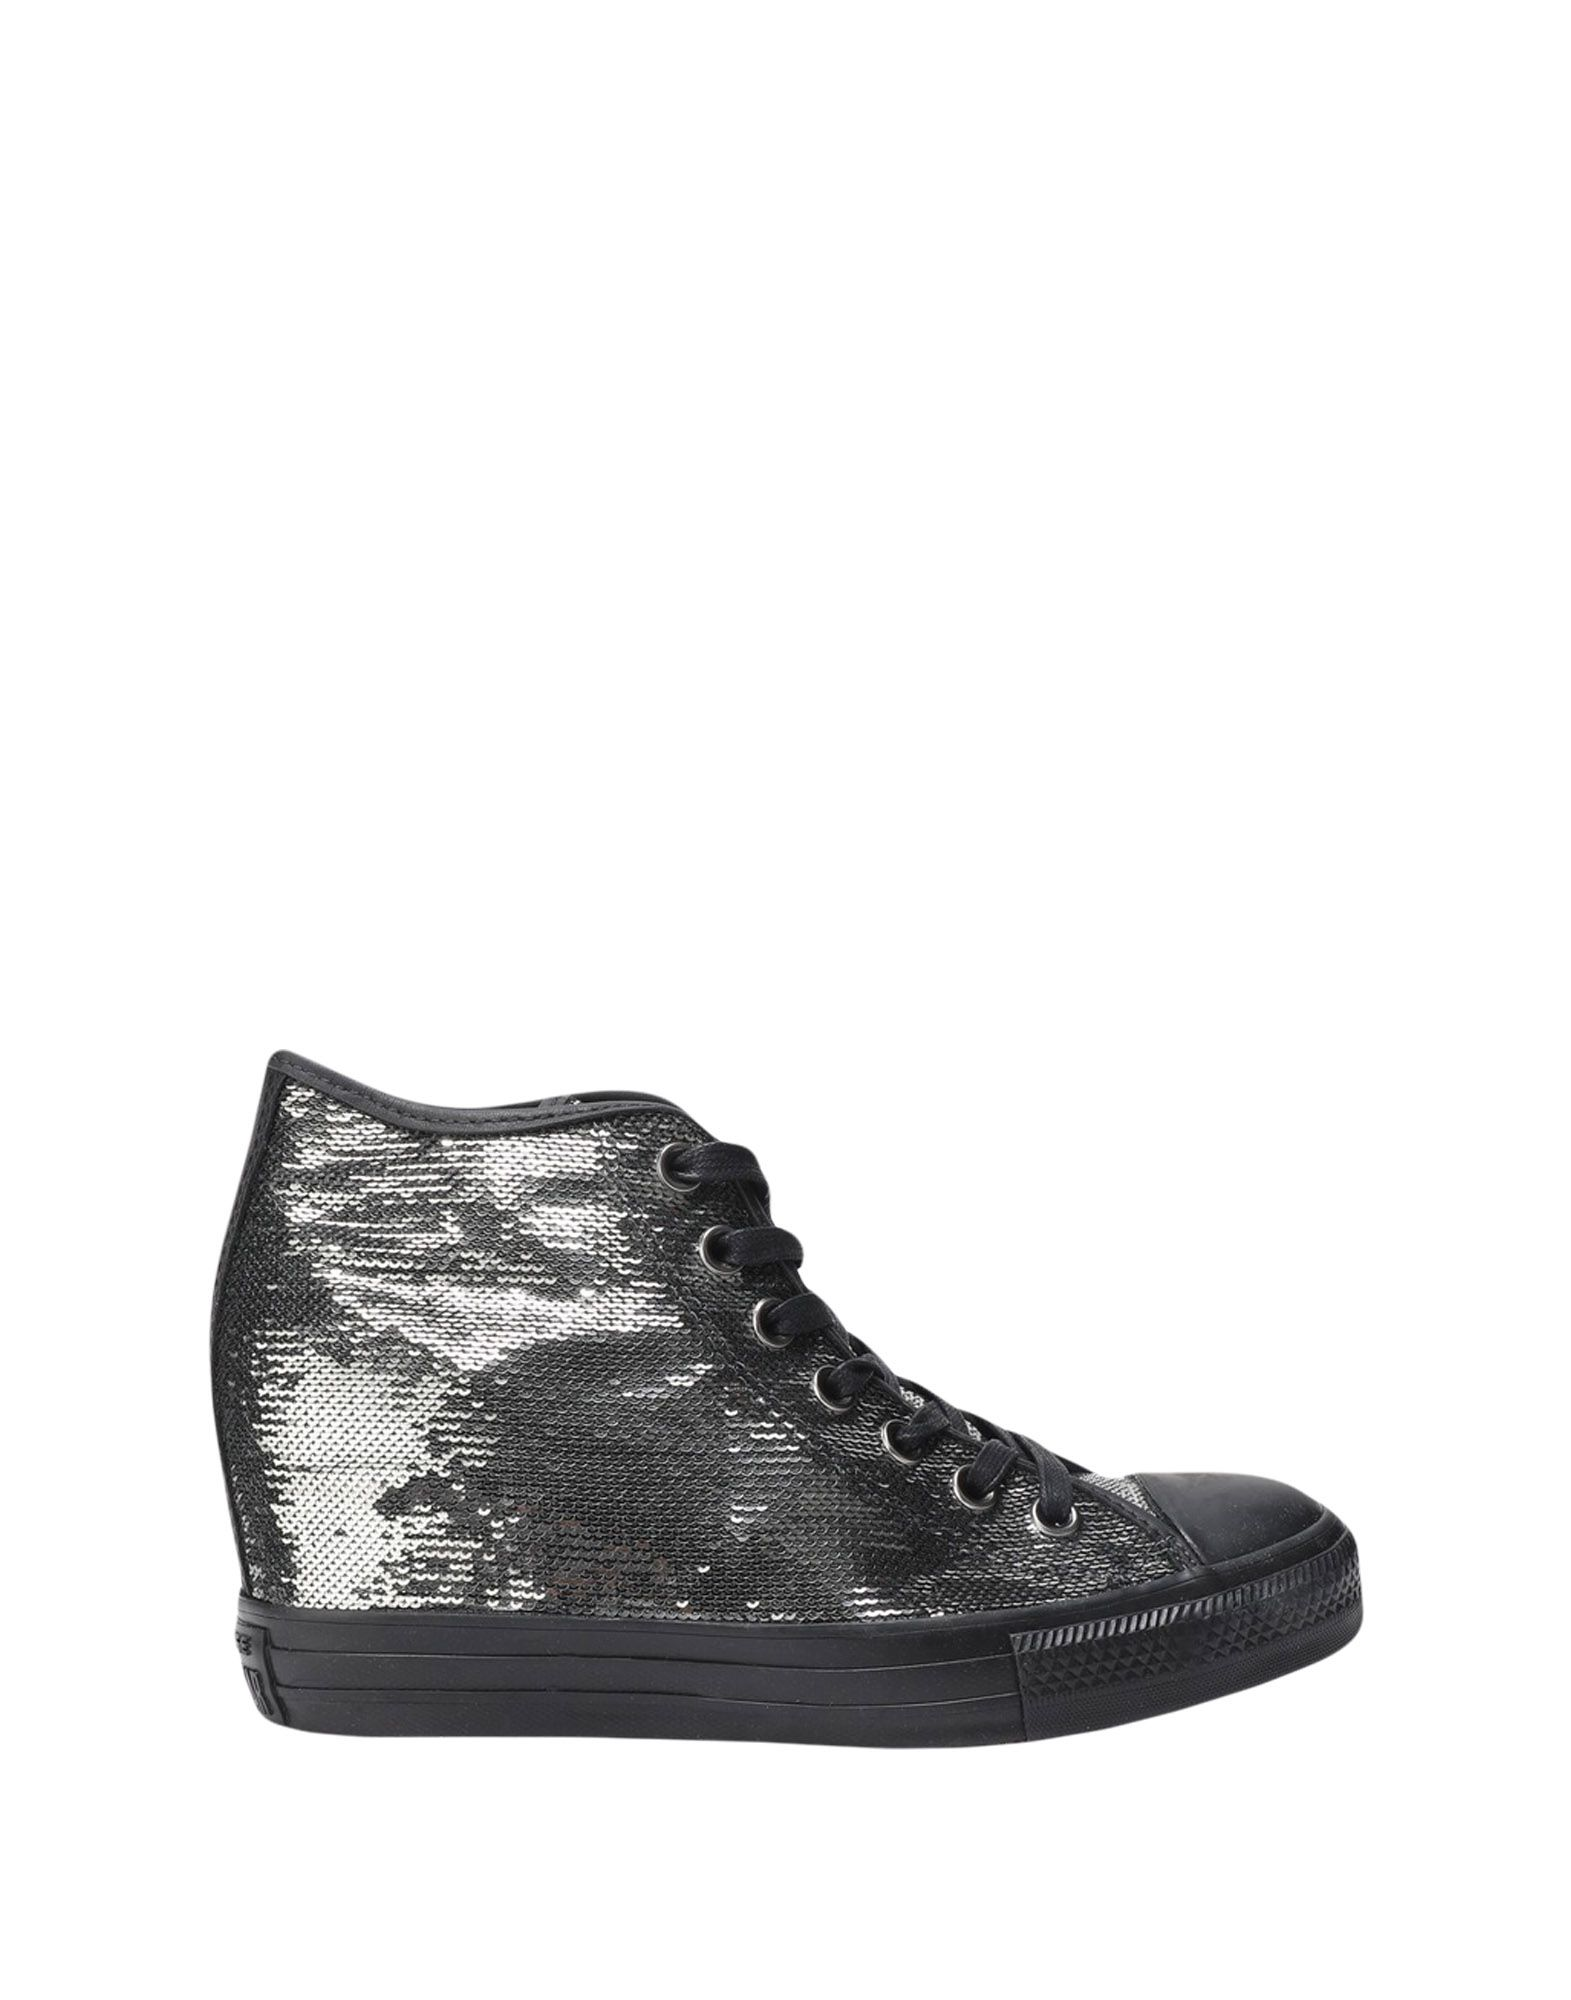 Sneakers Converse All Star Ct As Mid Lux Sequins - Femme - Sneakers Converse All Star sur